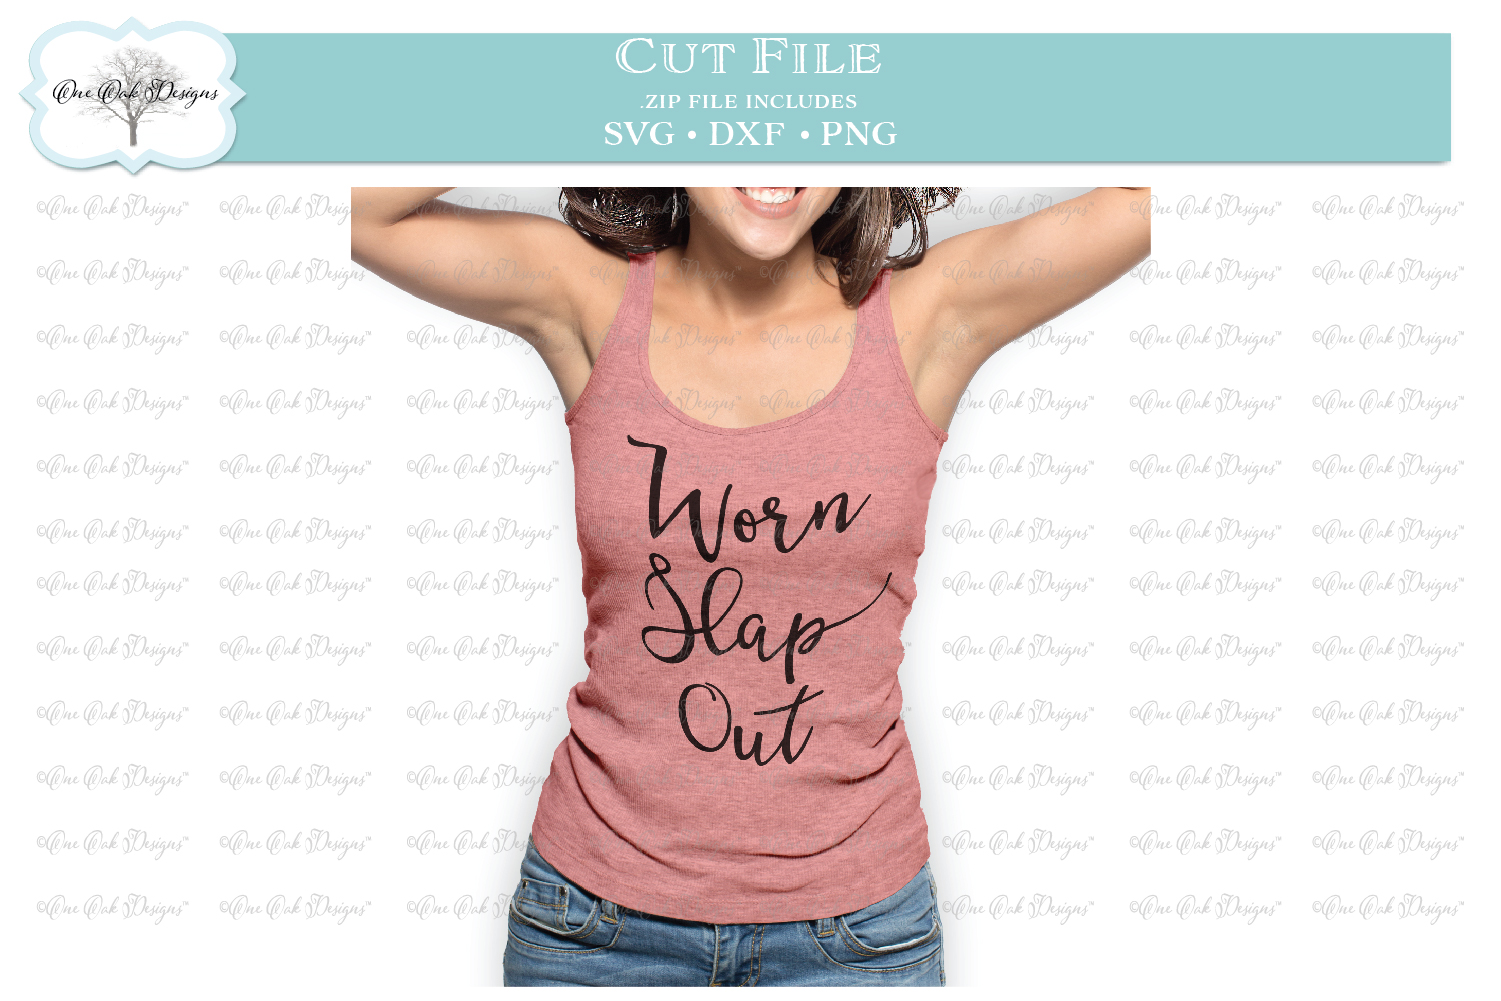 Worn Slap Out Southern Saying - SVG DXF PNG example image 2